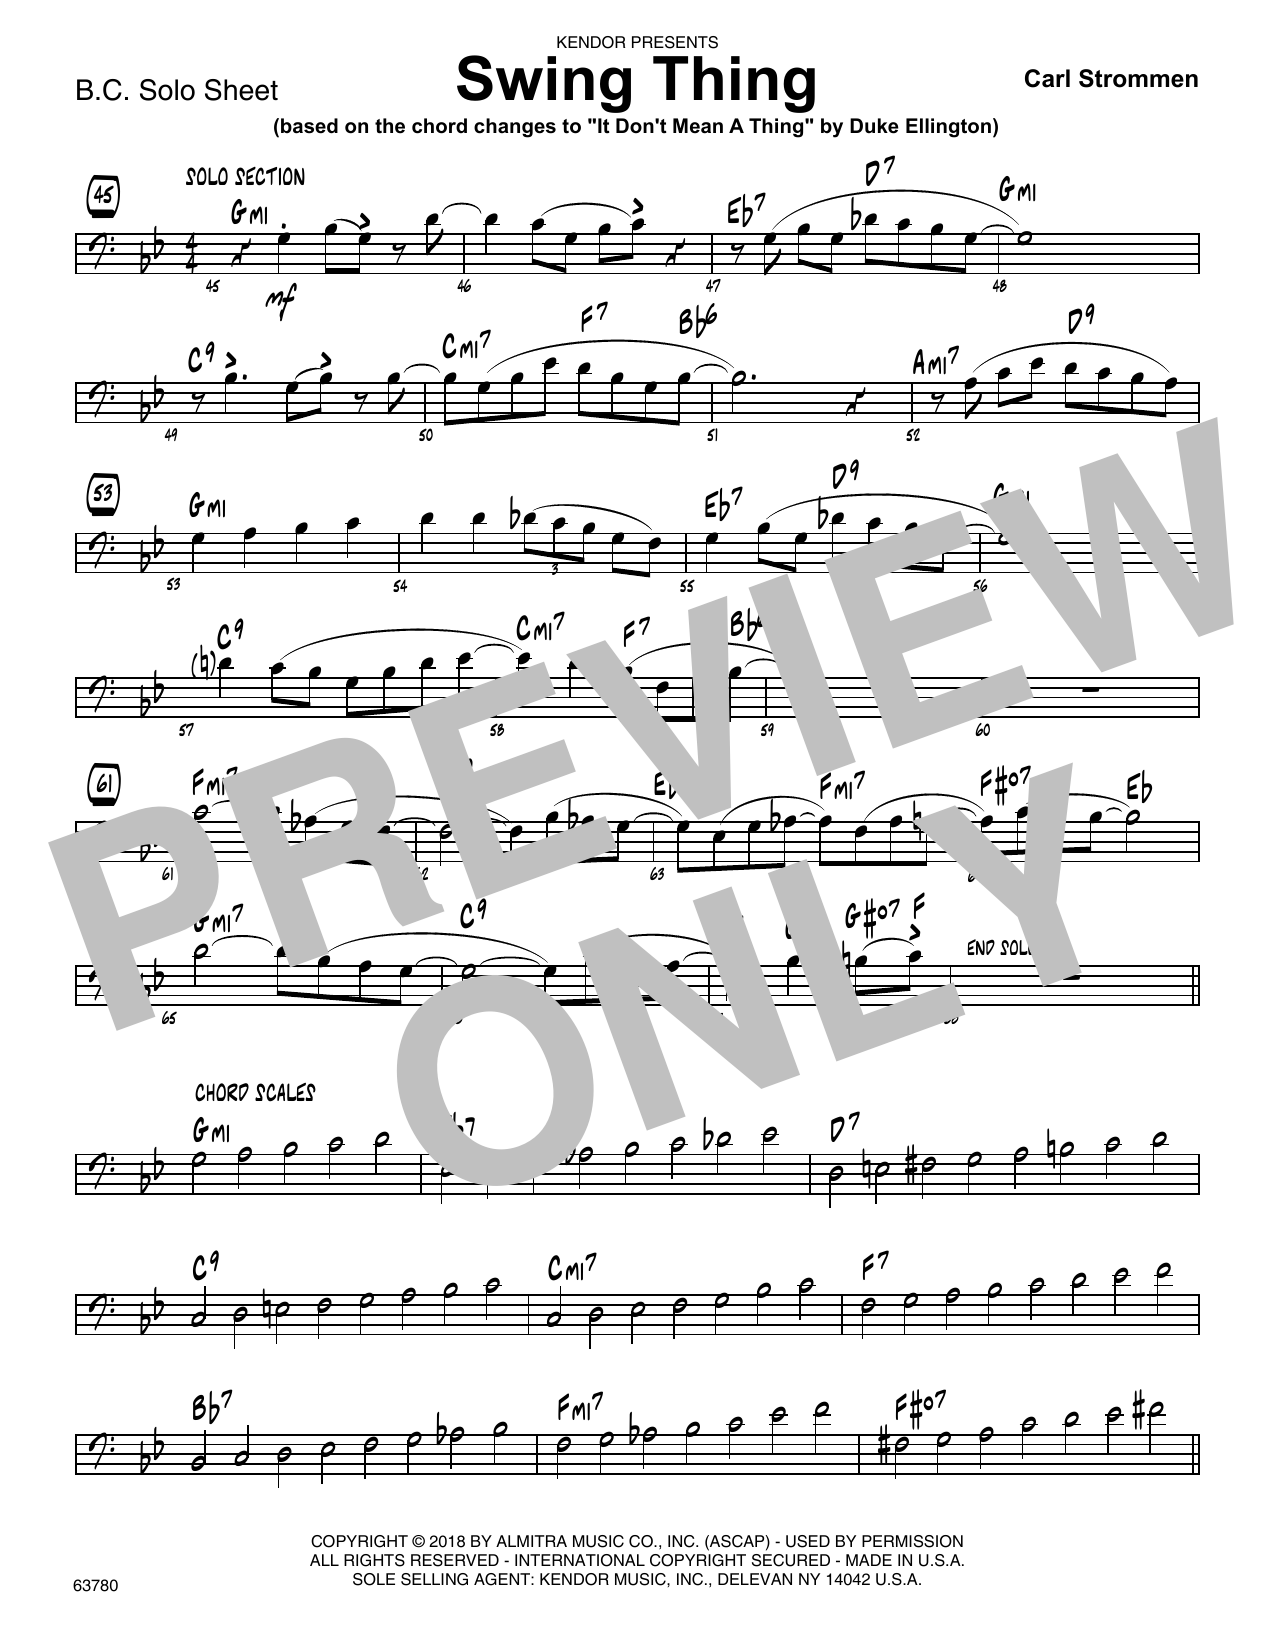 Carl Strommen Swing Thing - Sample Solo - Bass Clef Instr. sheet music preview music notes and score for Jazz Ensemble including 1 page(s)